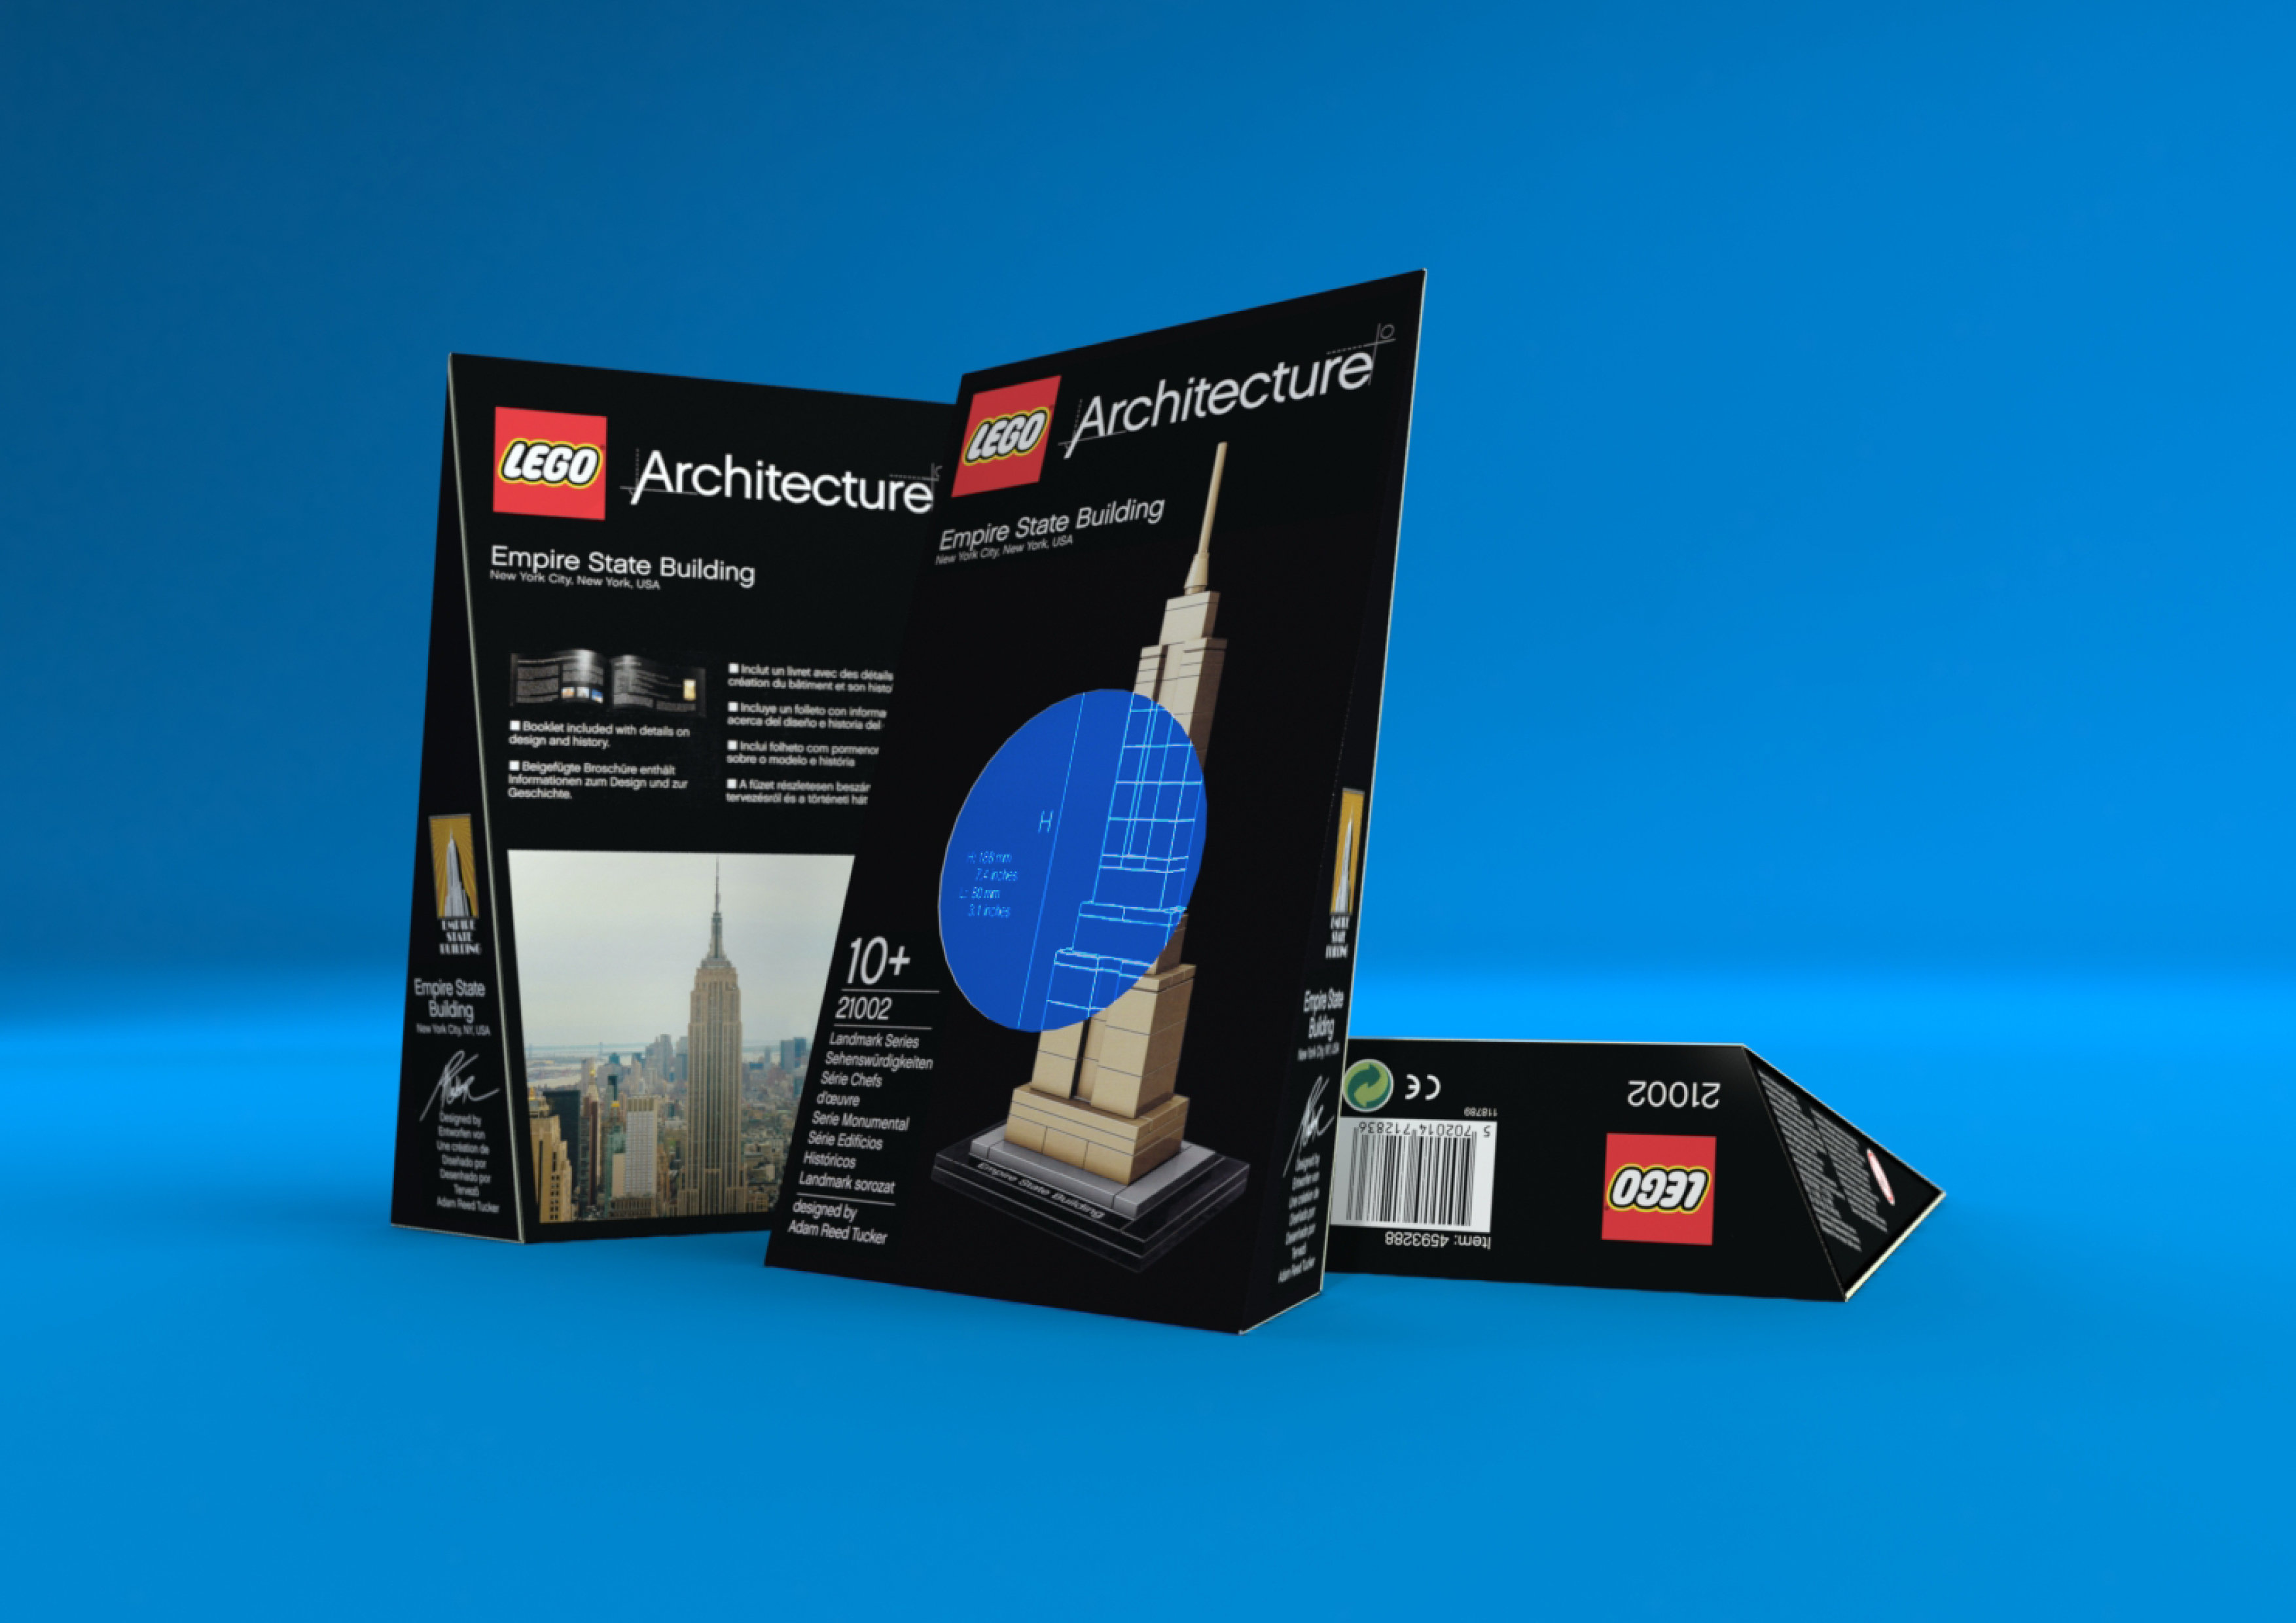 Lego Architecture - Final packaging rendered in KeyShot